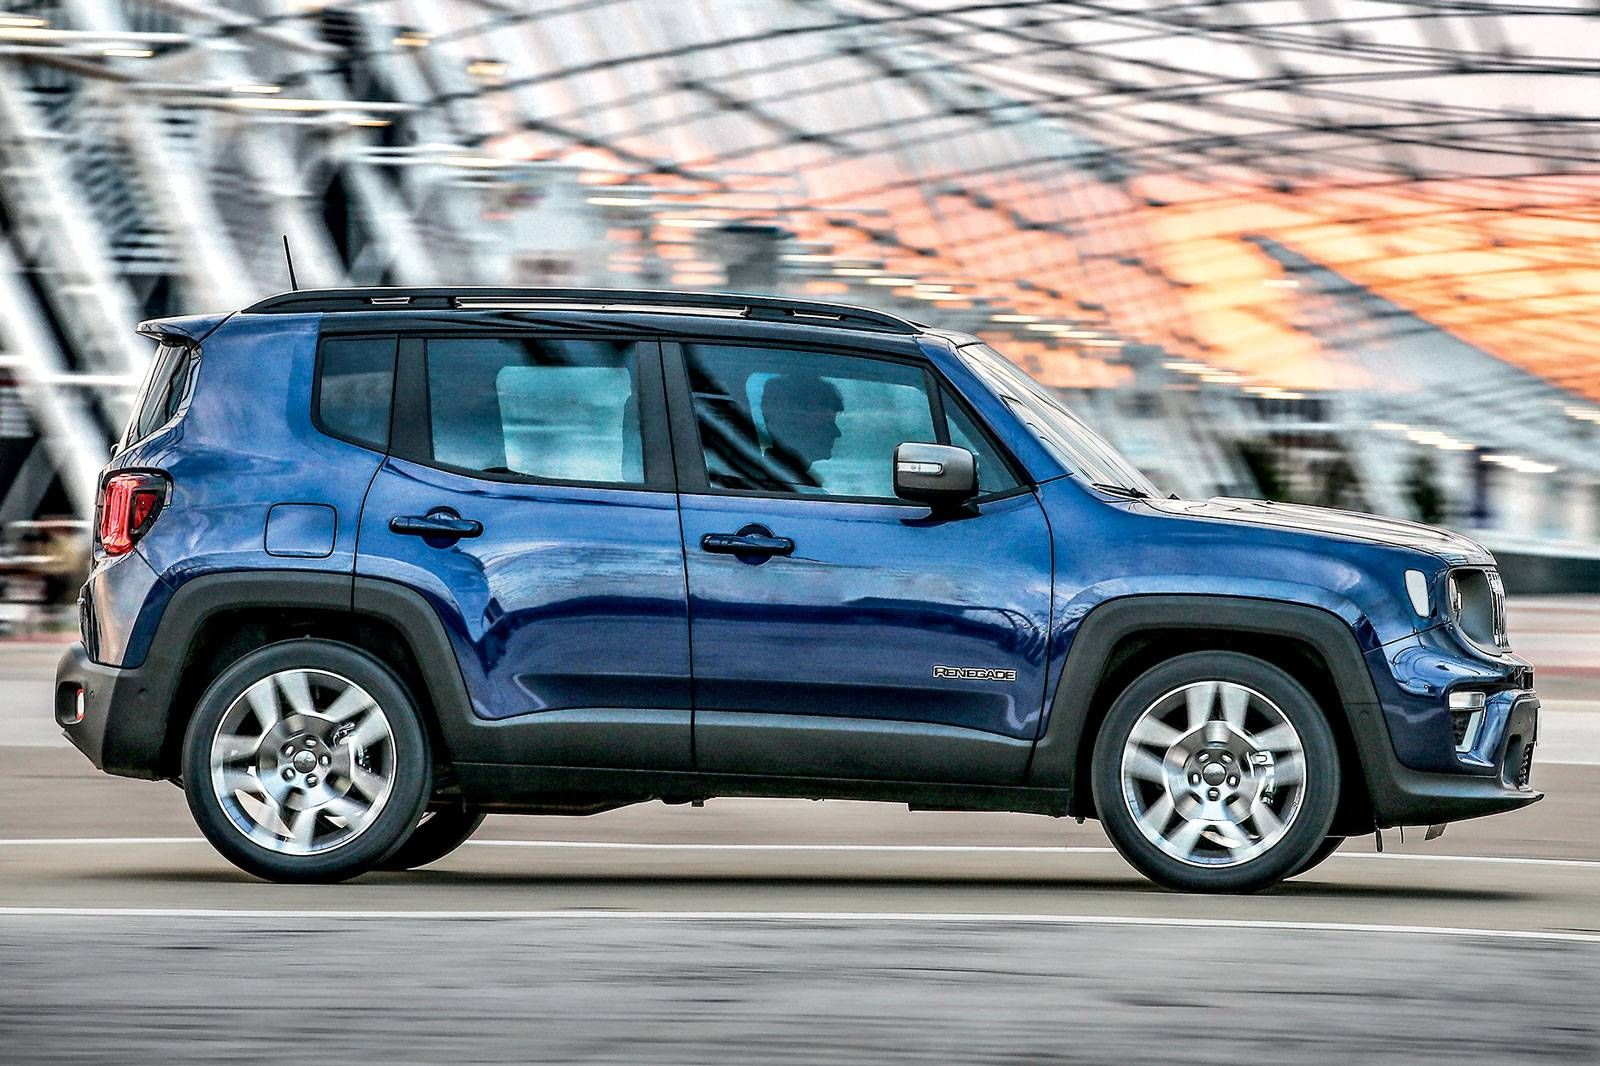 Jeep Renegade Limited A Nova Estrela Da Fca Jeep Renegade Suv Jeep